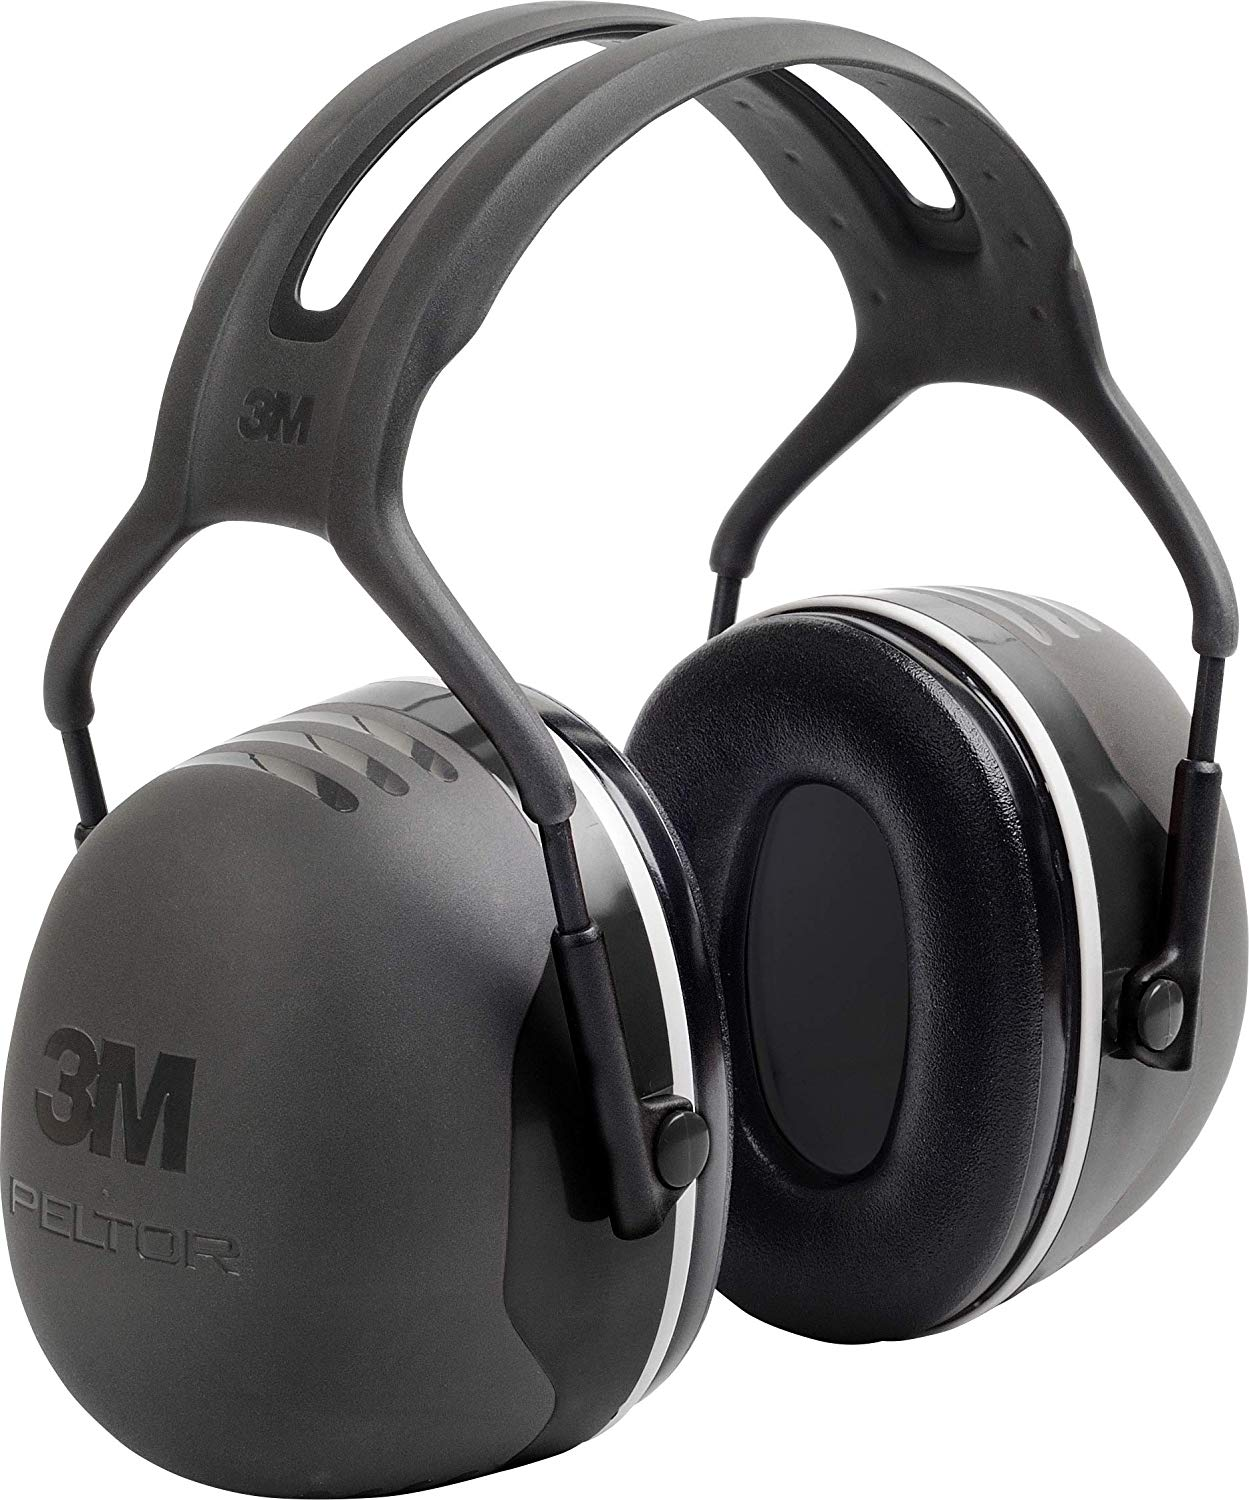 3M Peltor X-Series Over-the-Head Earmuffs - Ear Protection for Shooting